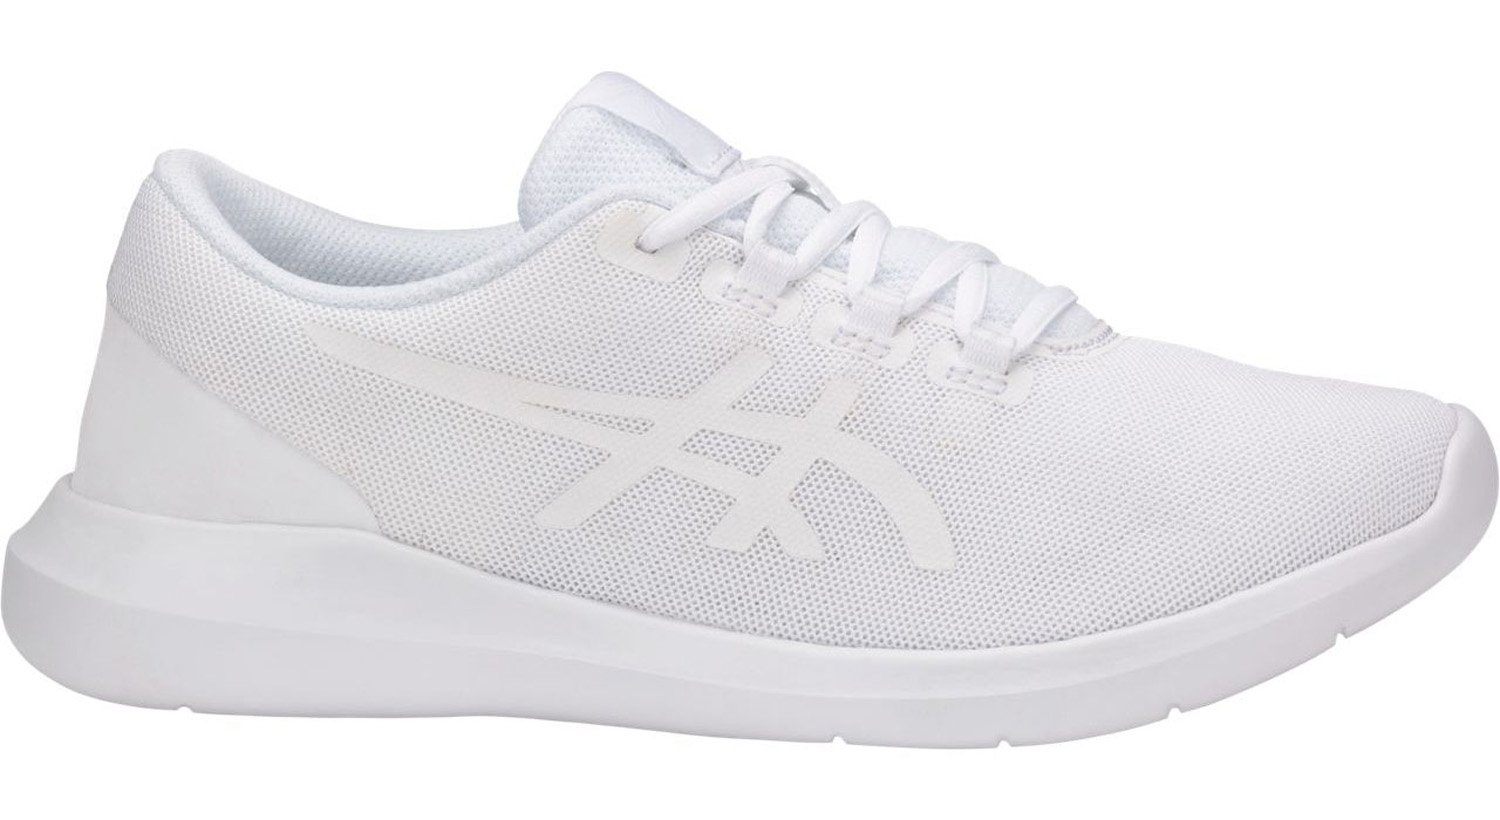 ASICS Metrolyte II Shoe Women's Walking, White/White/White 8.5 B(M) US